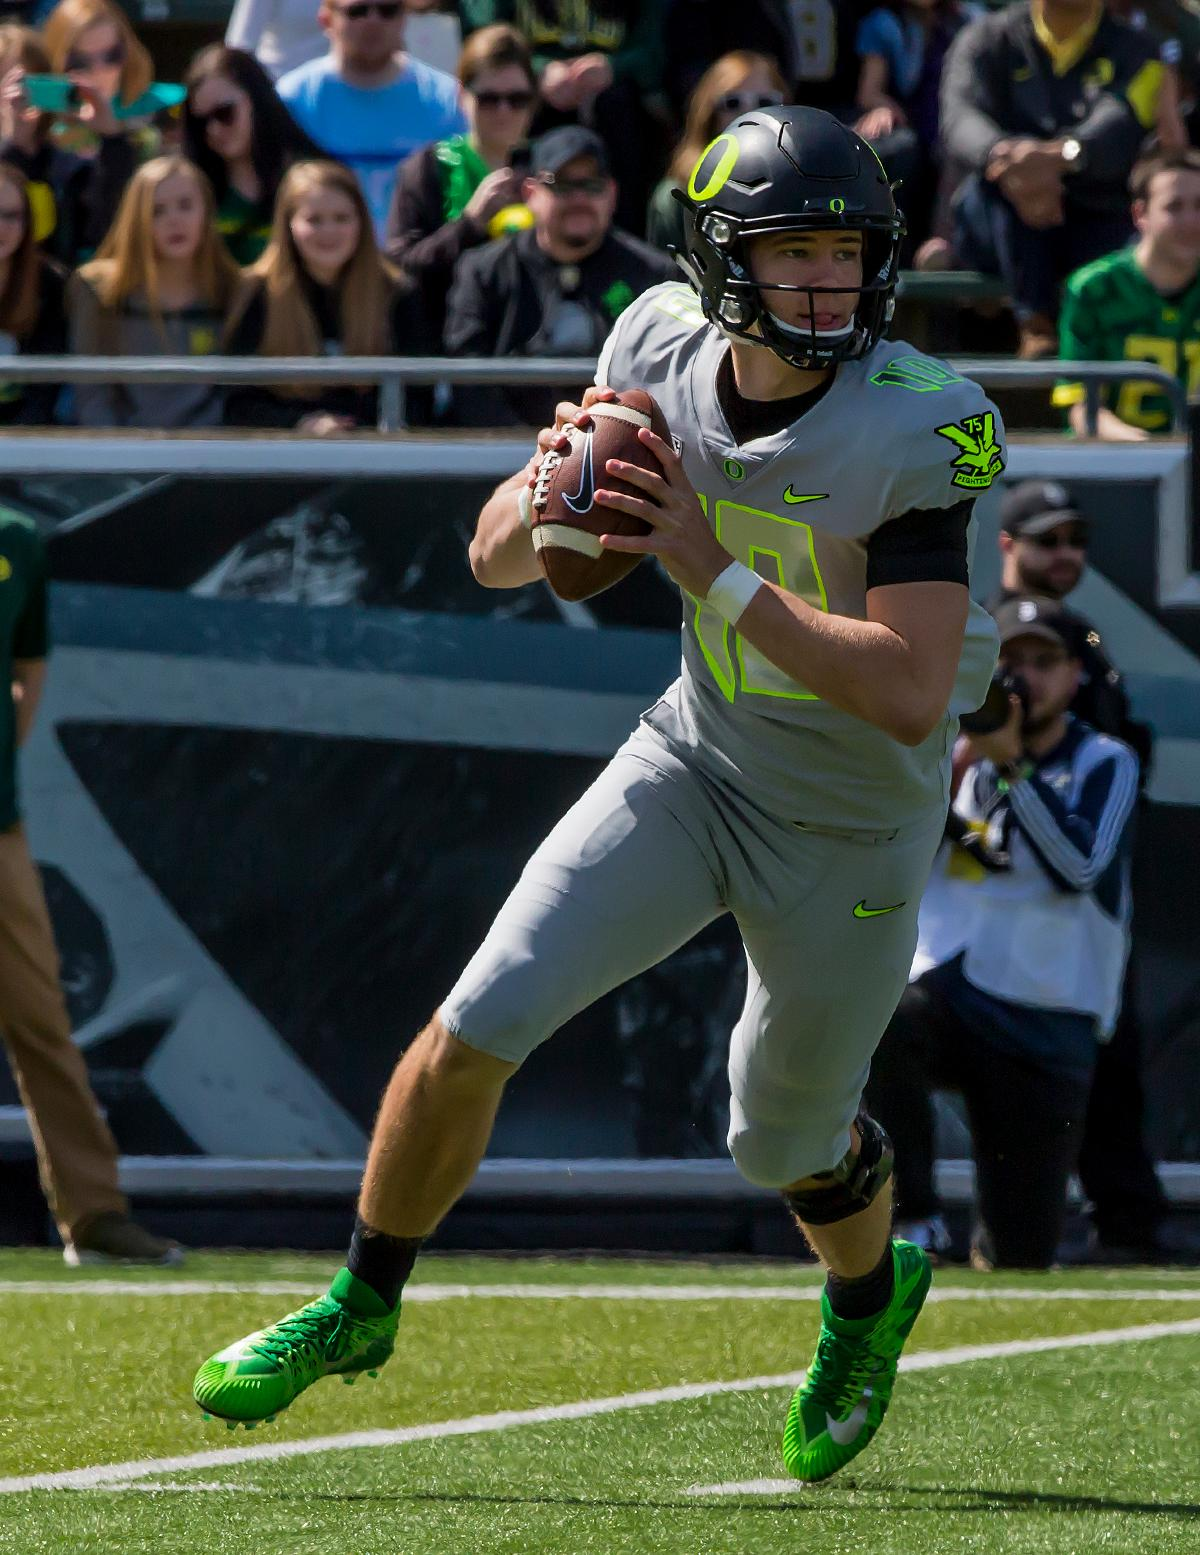 Team Free quarter back Justin Herbert (#10) prepares to pass the ball. The 2017 Oregon Ducks Spring Game provided fans their first glimpse at the team under new Head Coach Willie Taggart's direction. Team Free defeated Team Brave 34-11 on a sunny dat at Autzen Stadium in Eugene, Oregon. Photo by Ben Lonergan, Oregon News Lab